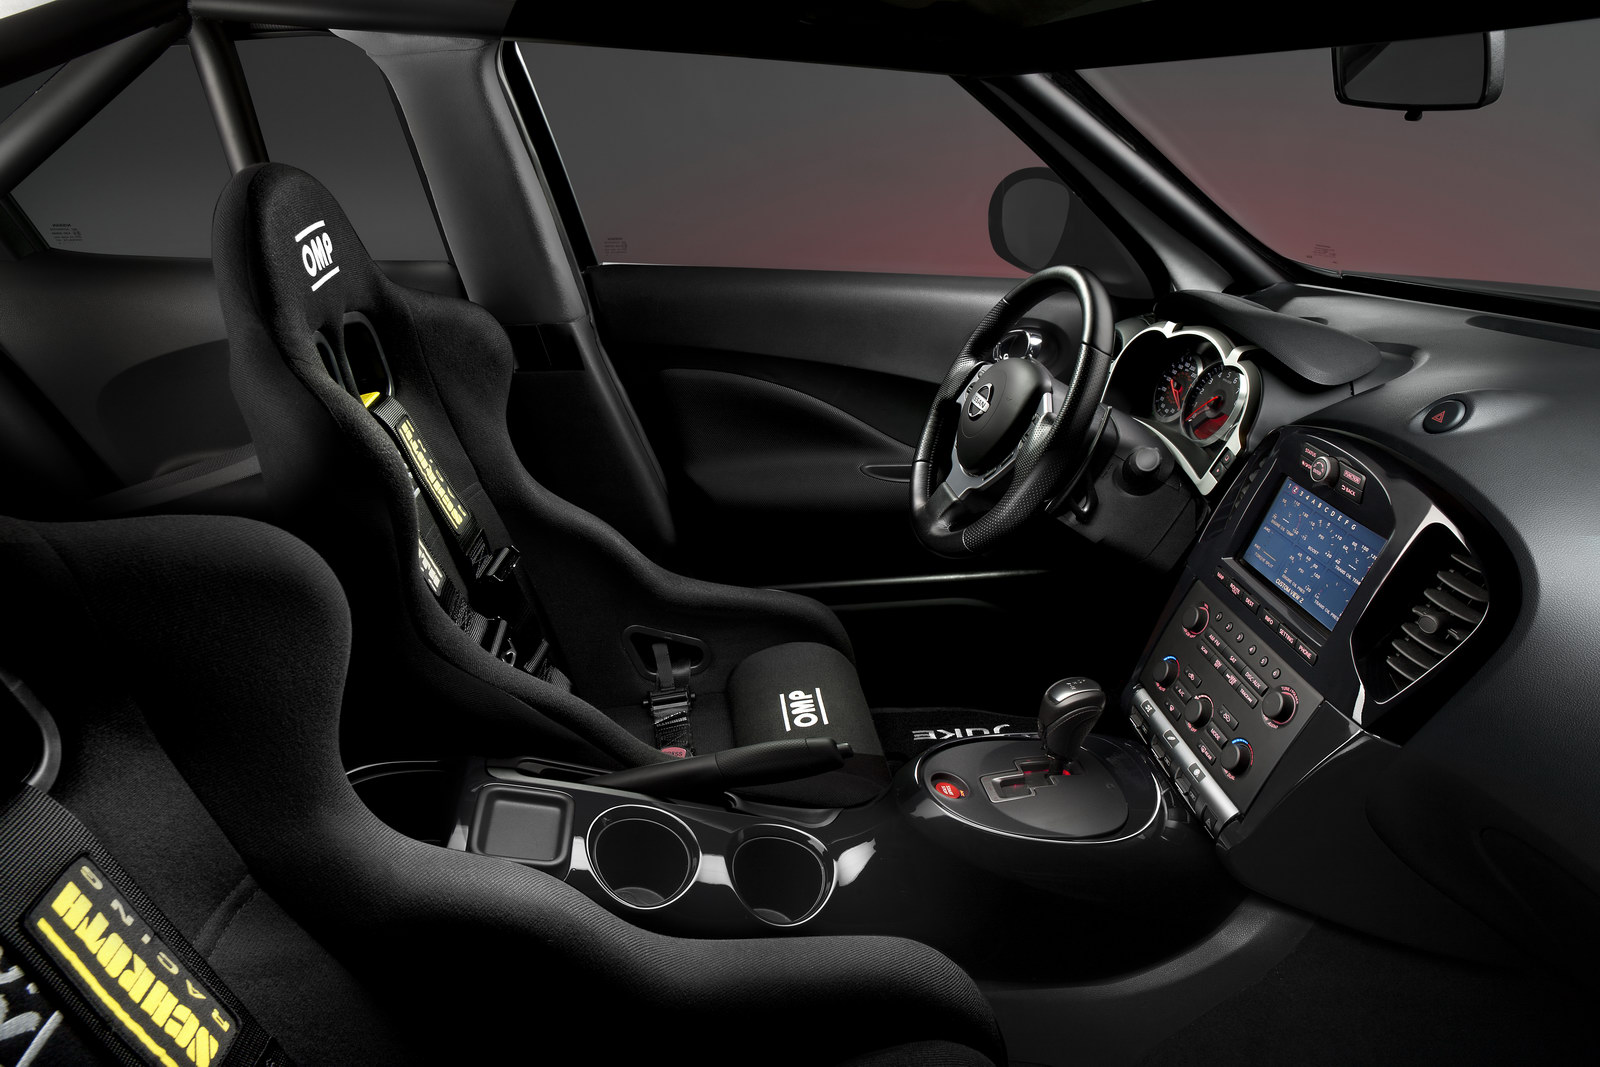 nissan juke r le suv coeur de gtr plan te. Black Bedroom Furniture Sets. Home Design Ideas